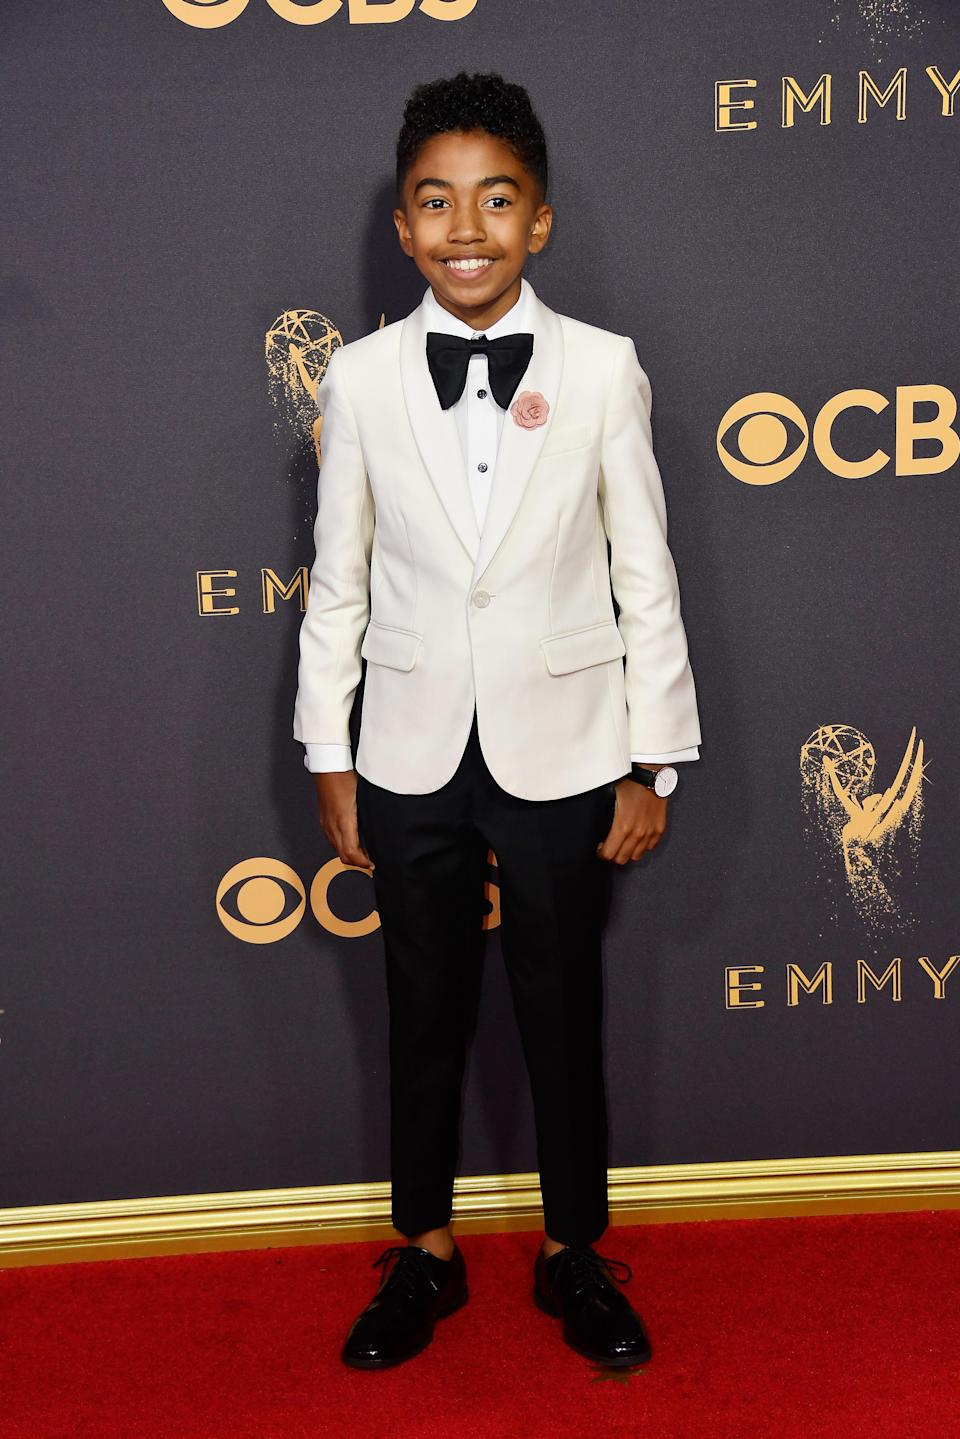 <p>Miles Brown attends the 69th Primetime Emmy Awards at the Microsoft Theater on Sept. 17, 2017, in Los Angeles. (Photo: Getty Images) </p>